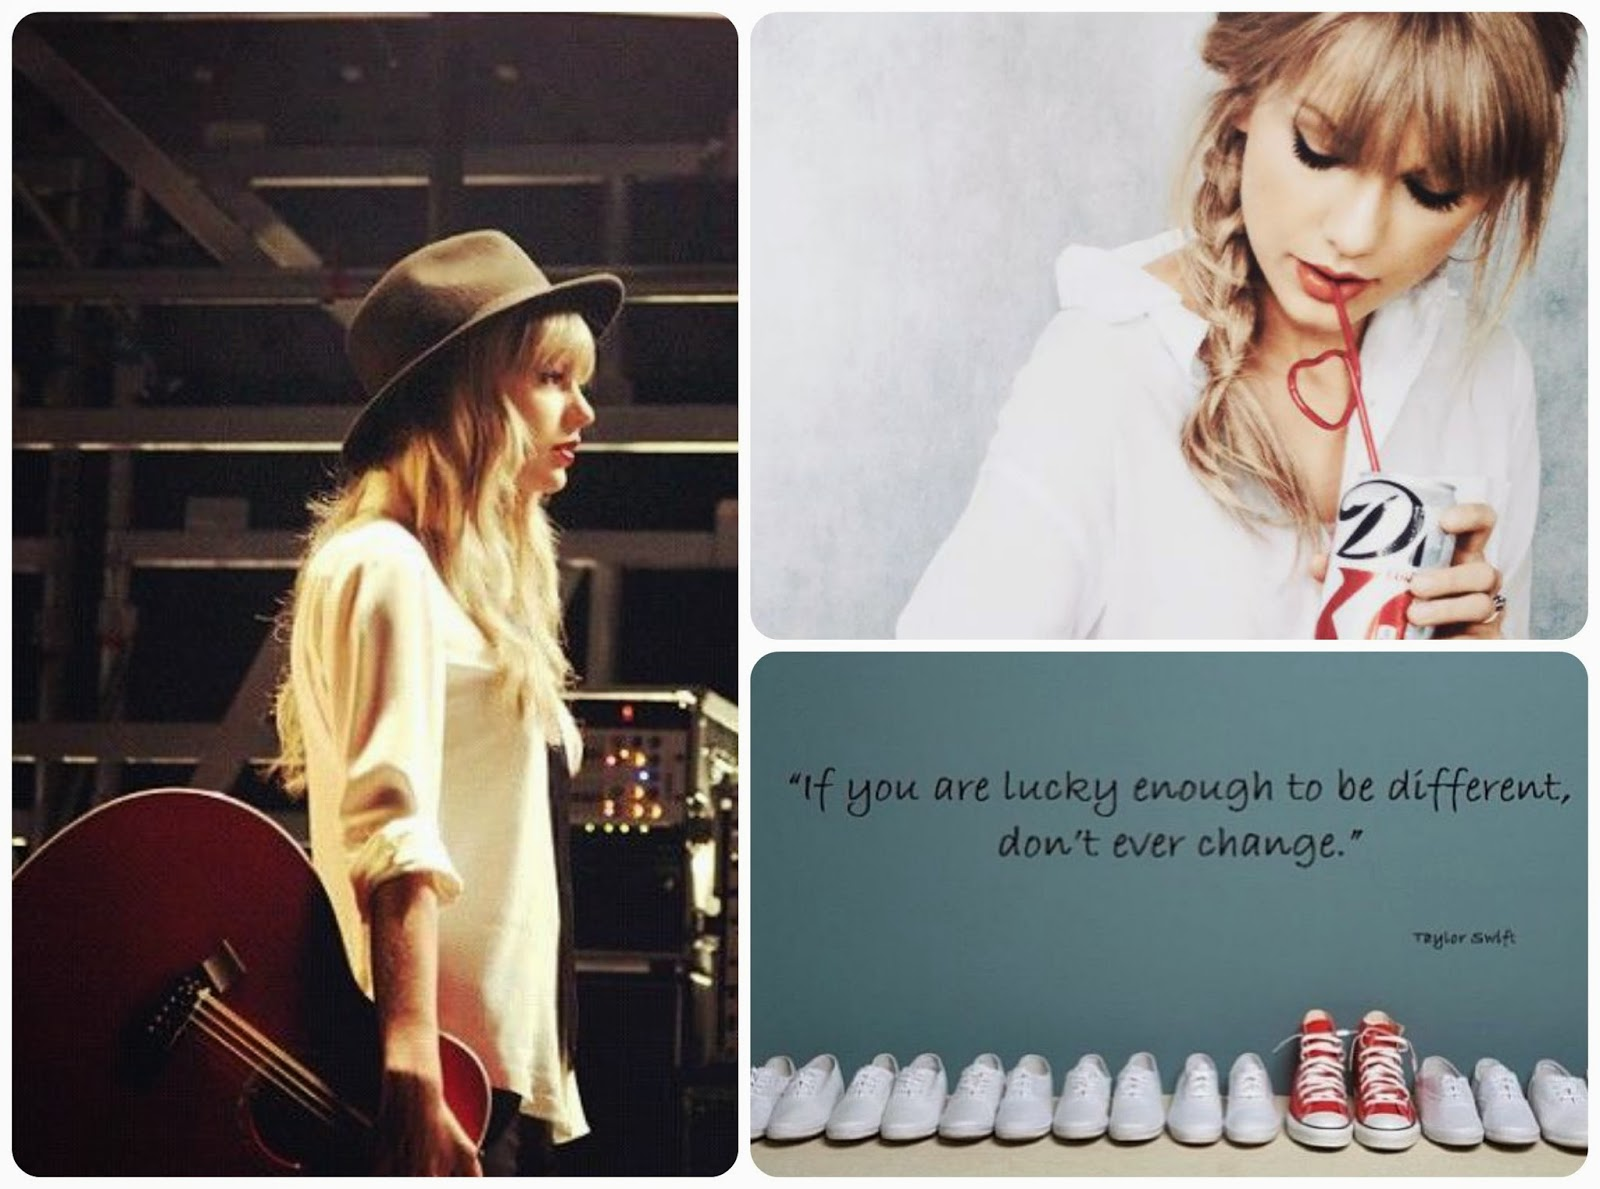 Taylor Swift - If you are lucky enough to be different, don't ever change